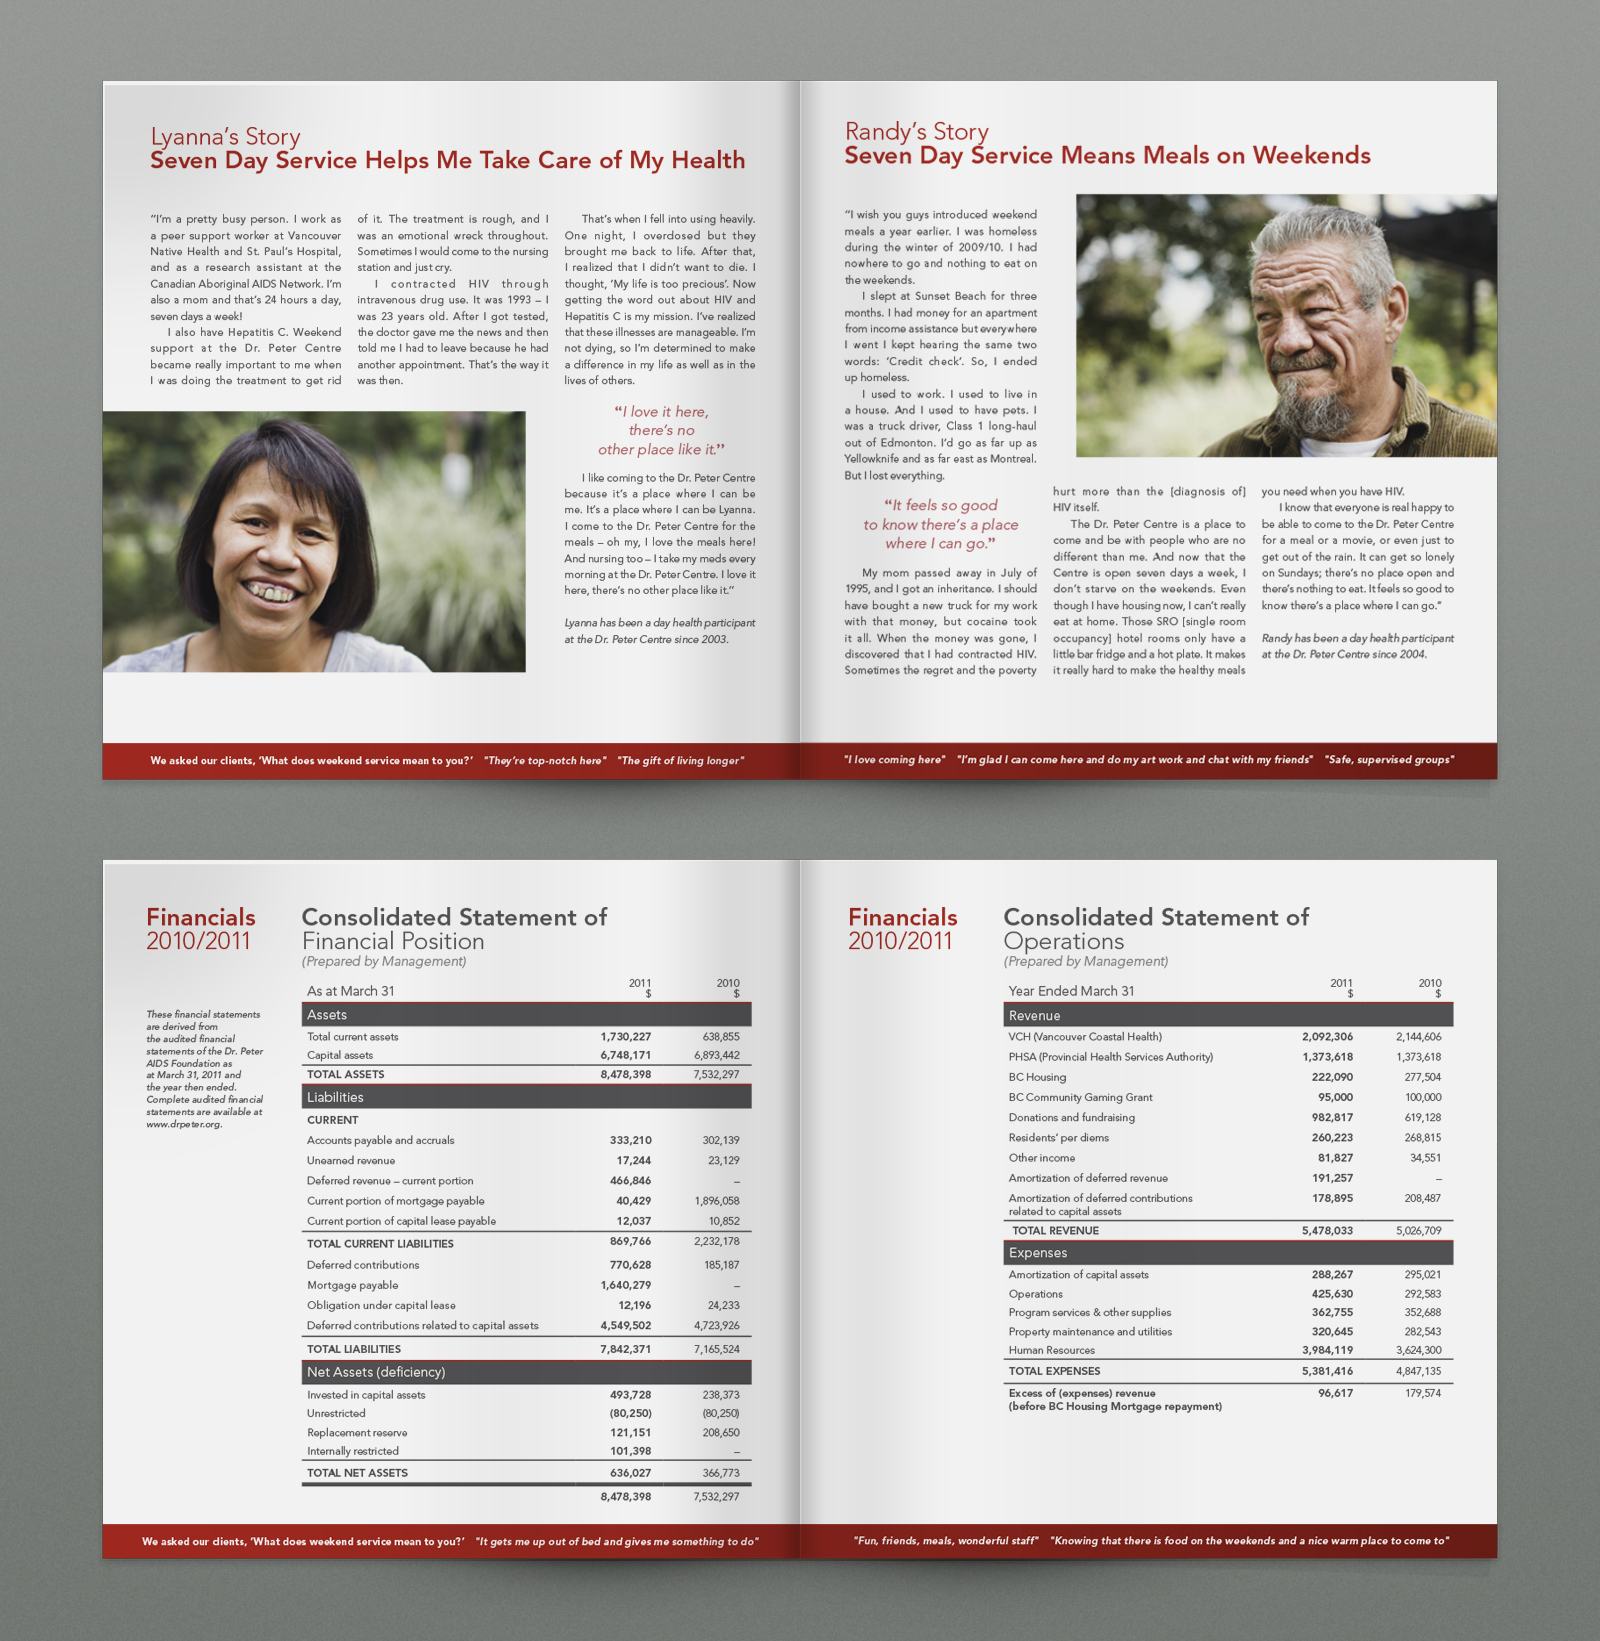 Inside spreads: Dr. Peter Annual Report 2011